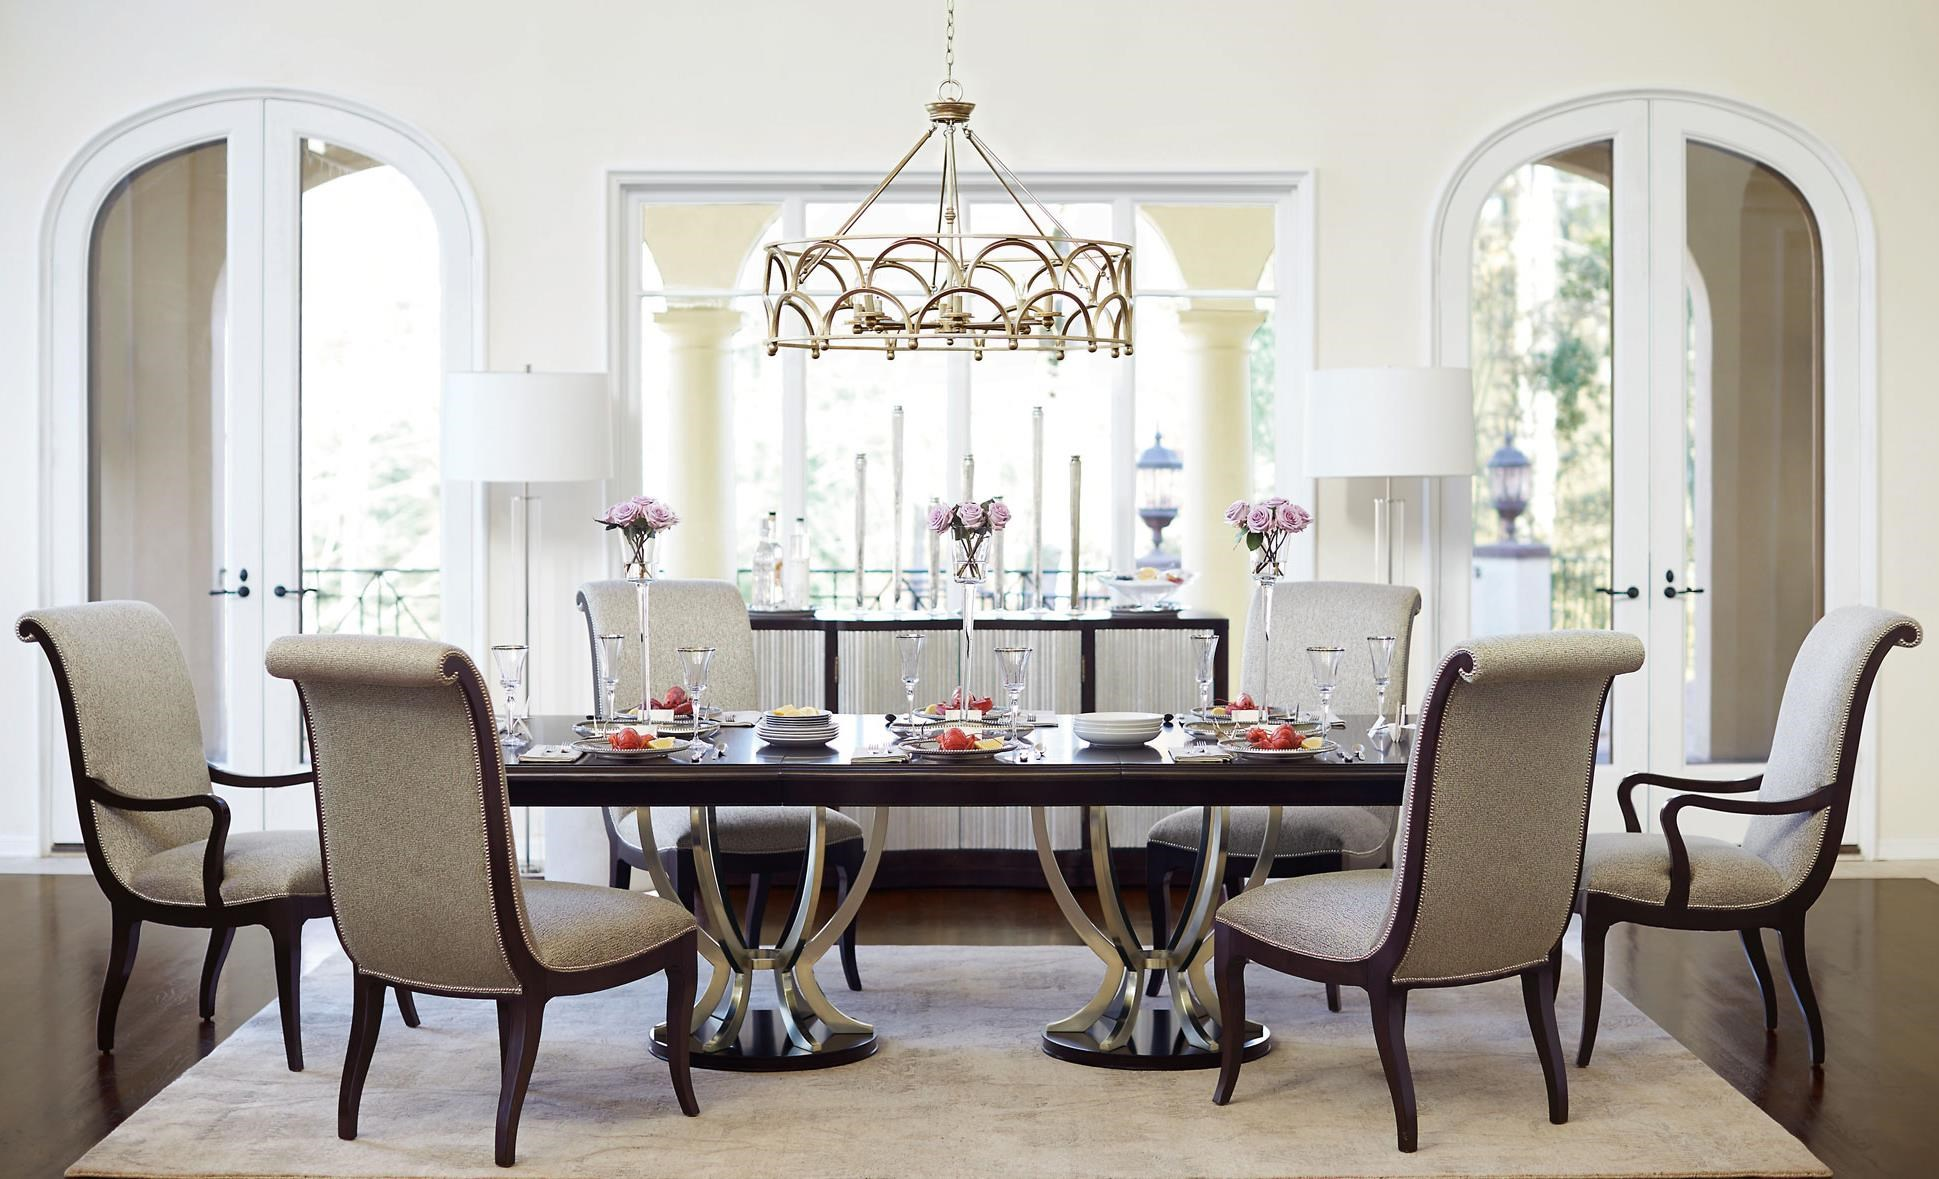 Bernhardt Miramont 7 Piece Dining Table and Chair Set